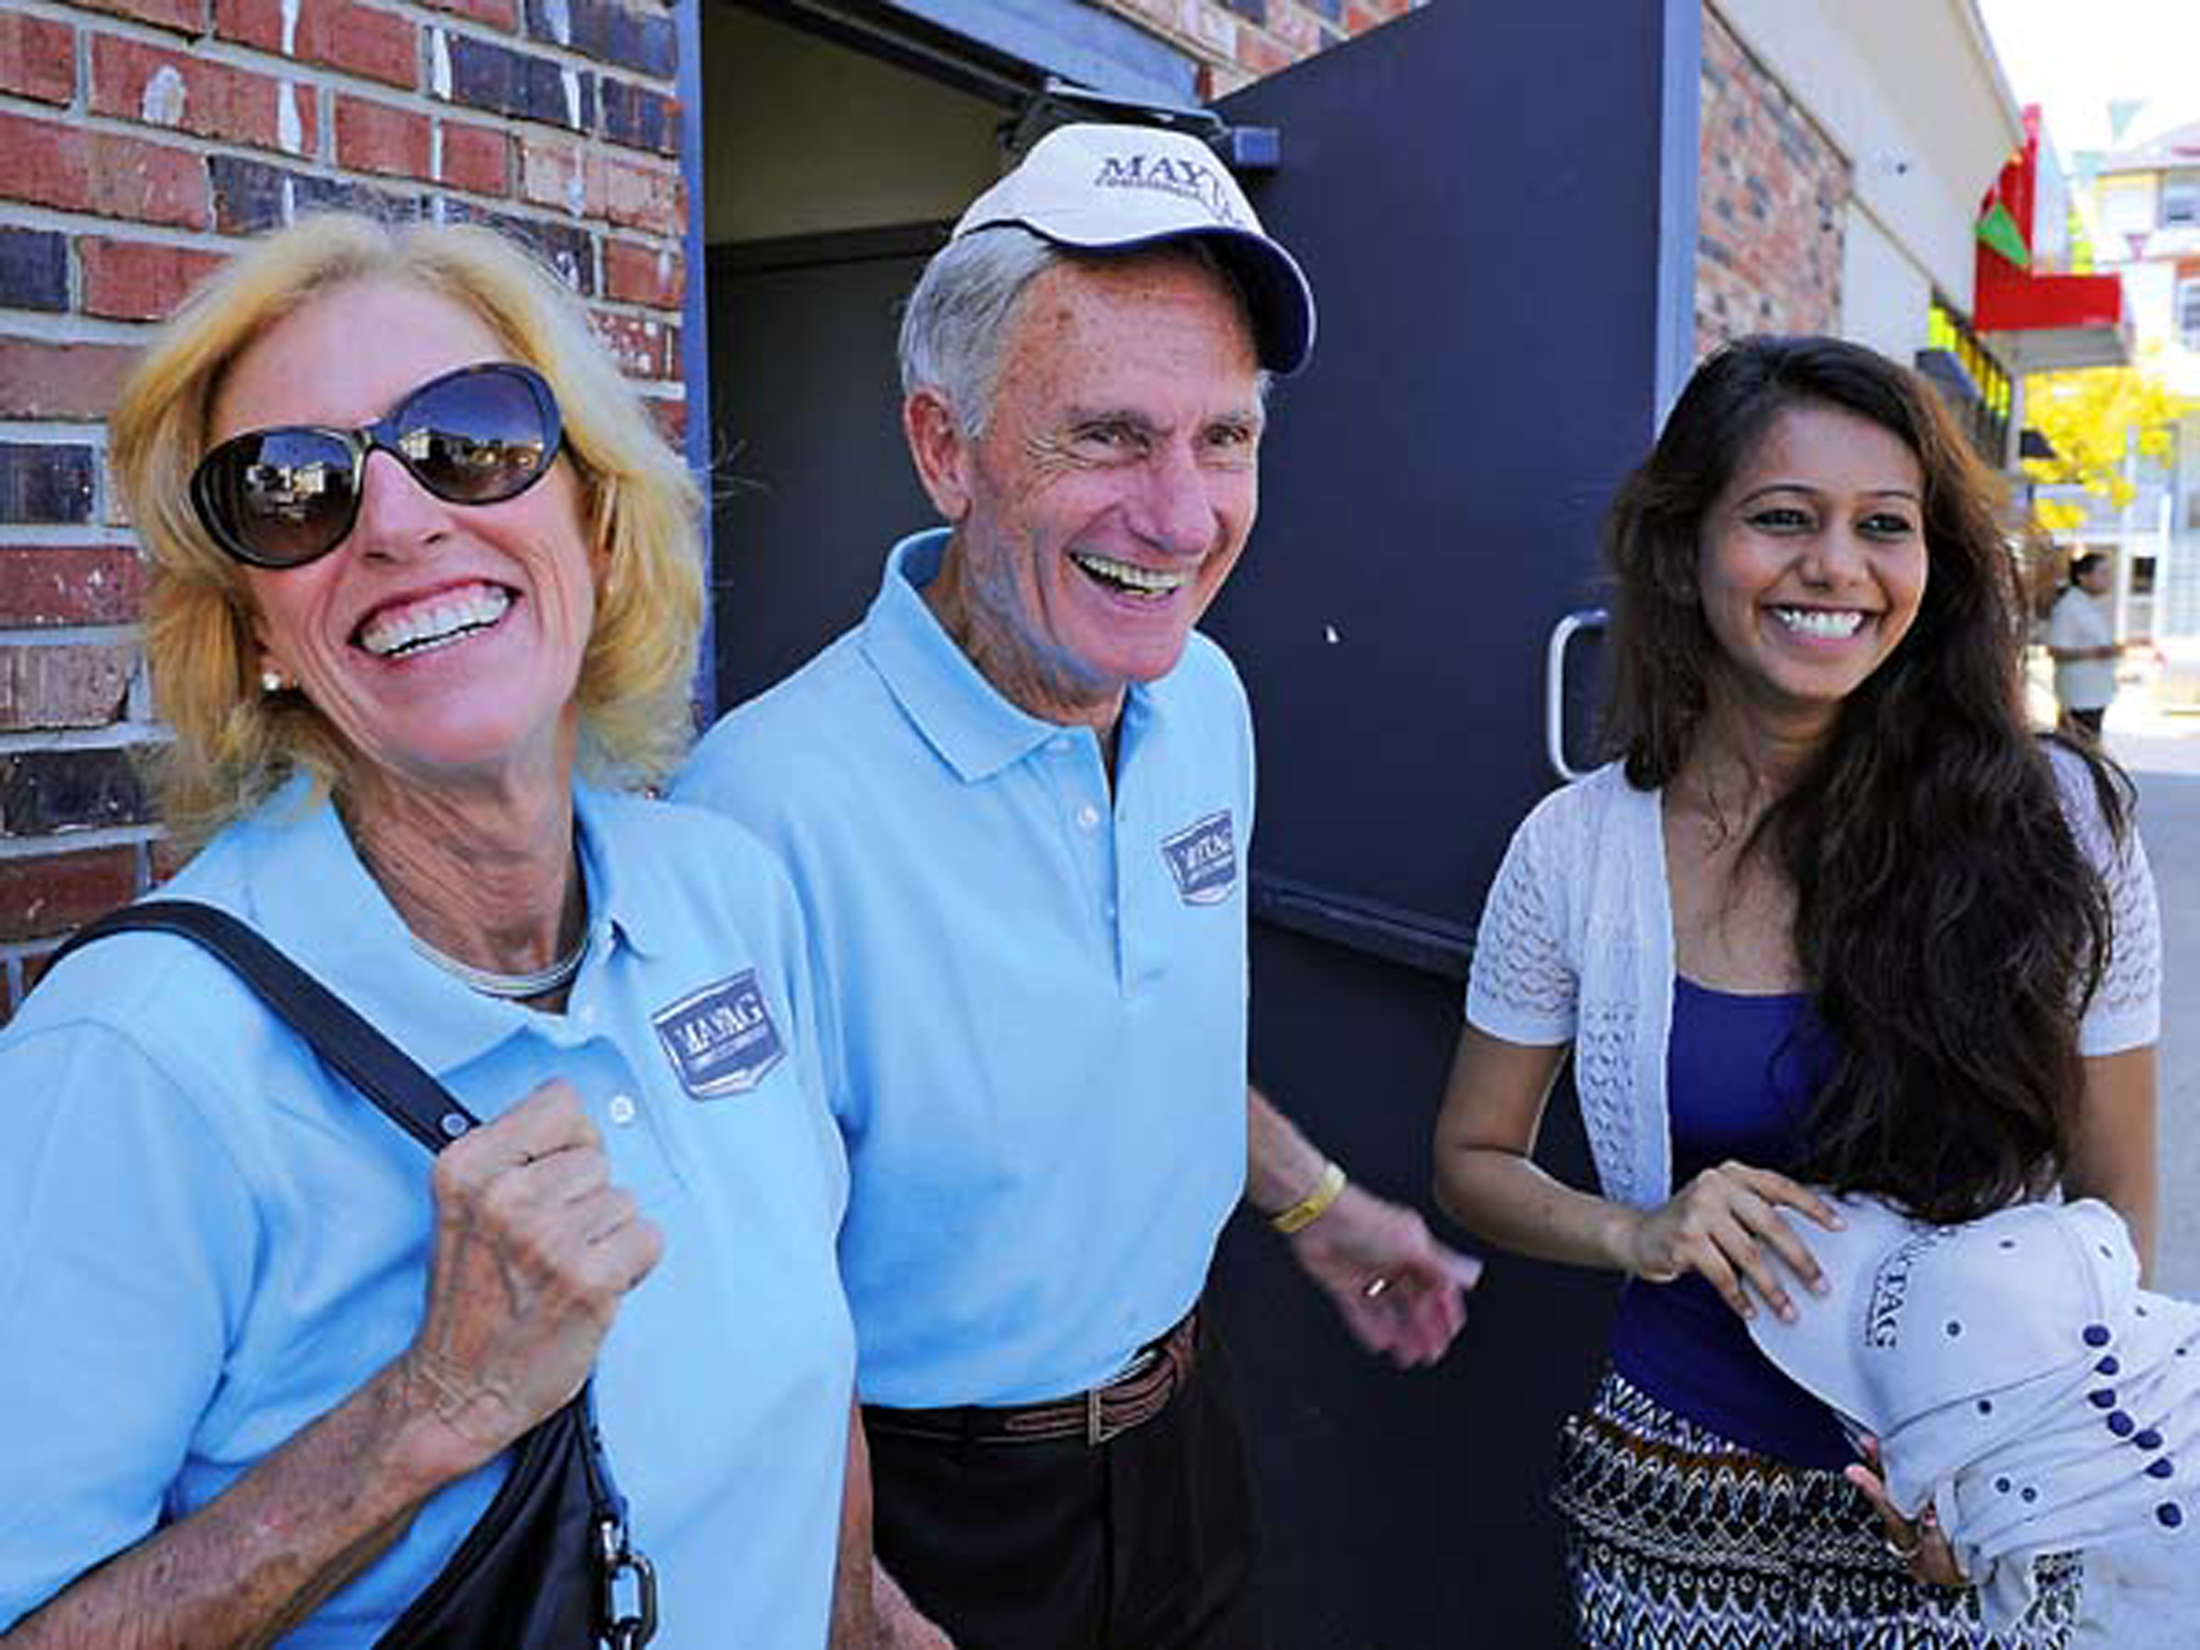 Dick and Sue LaMaina, 72 and 69, owners of the third generation Maytag commercial laundry equipment distribution company, Cherry Hill-based Equipment Marketers, talk with Alpa Patel (right) the wife of one of the owner partners of a new Maytag laundromat during the grand opening in Atlantic City August 27, 2014. ( TOM GRALISH / Staff Photographer )